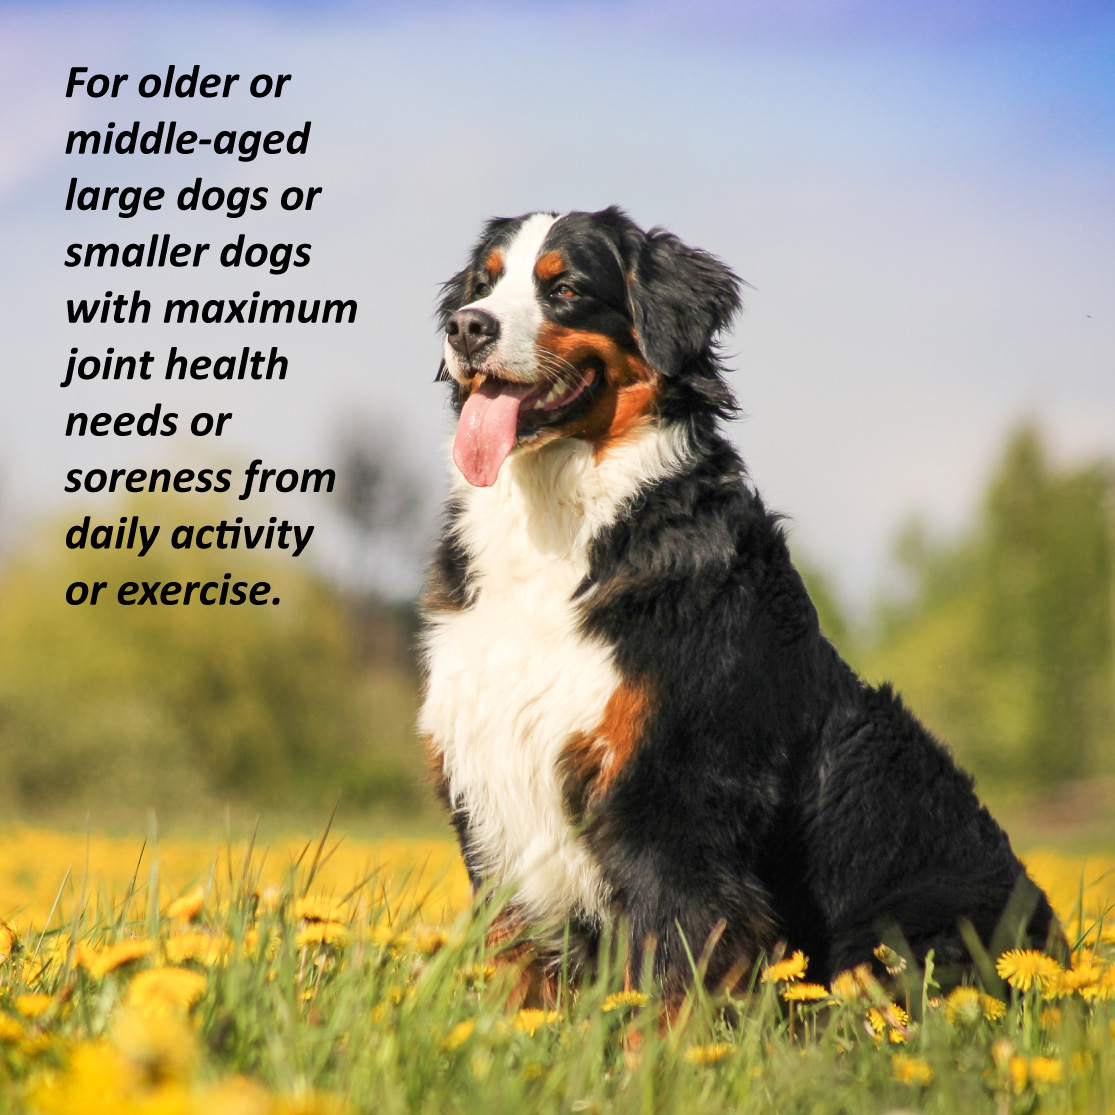 JointMAX Triple Strength for Dogs For older or middle-aged large dogs or smaller dogs with maximum joint health needs or soreness from daily activity or exercise.